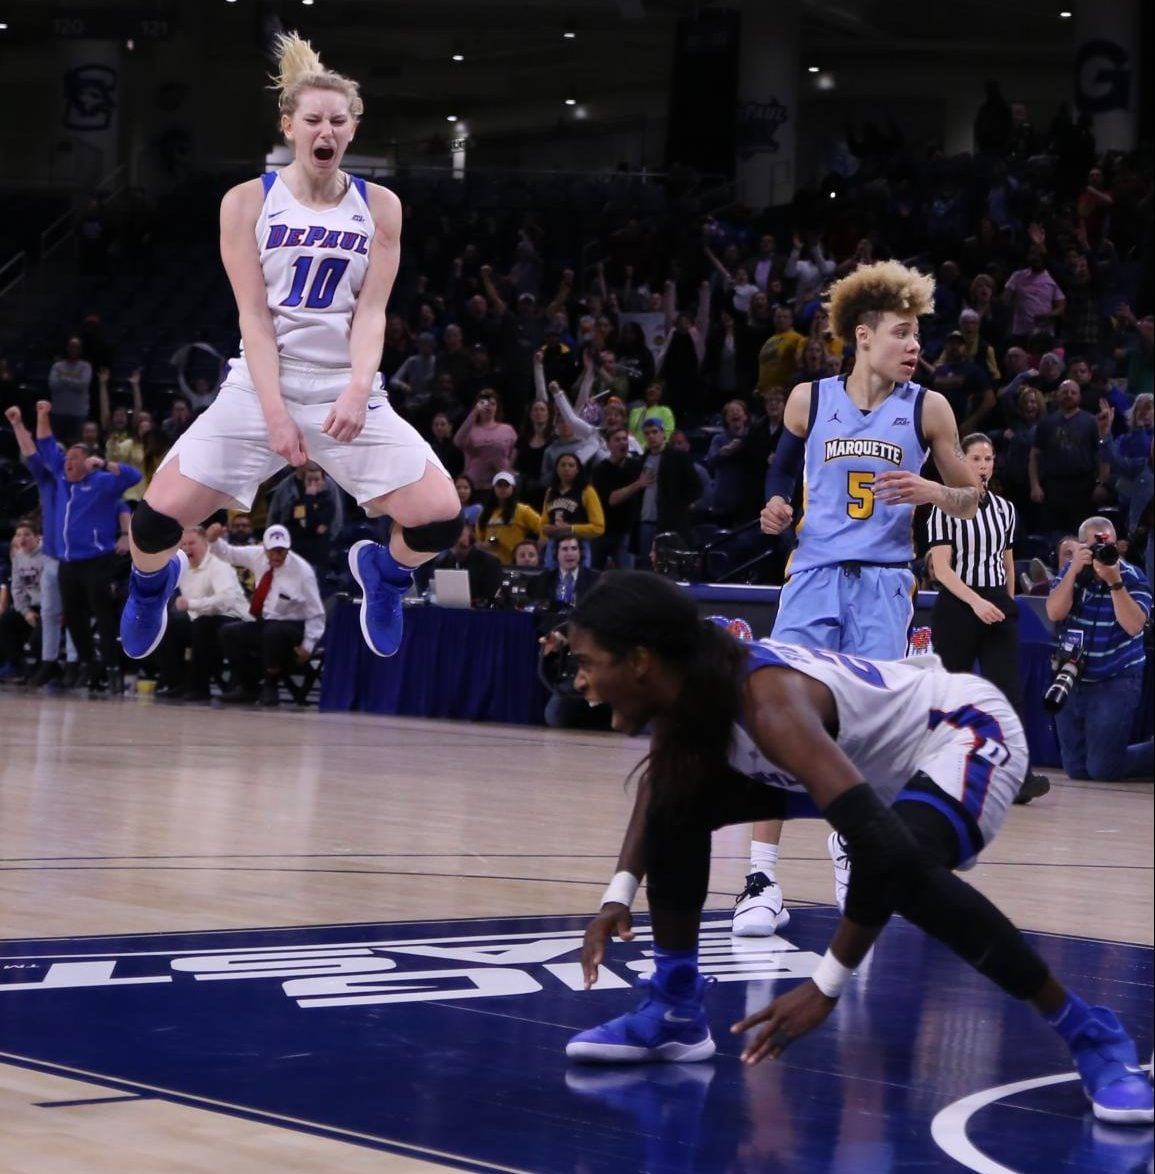 DePaul freshman guard Lexi Held reacts as junior forward Chante Stonewall slaps the floor after making the game-tying shot with five seconds left in the game against Marquette. Stonewall made the free throw to secure the Big East Tournament title for DePaul. Alexa Sandler | The DePaulia